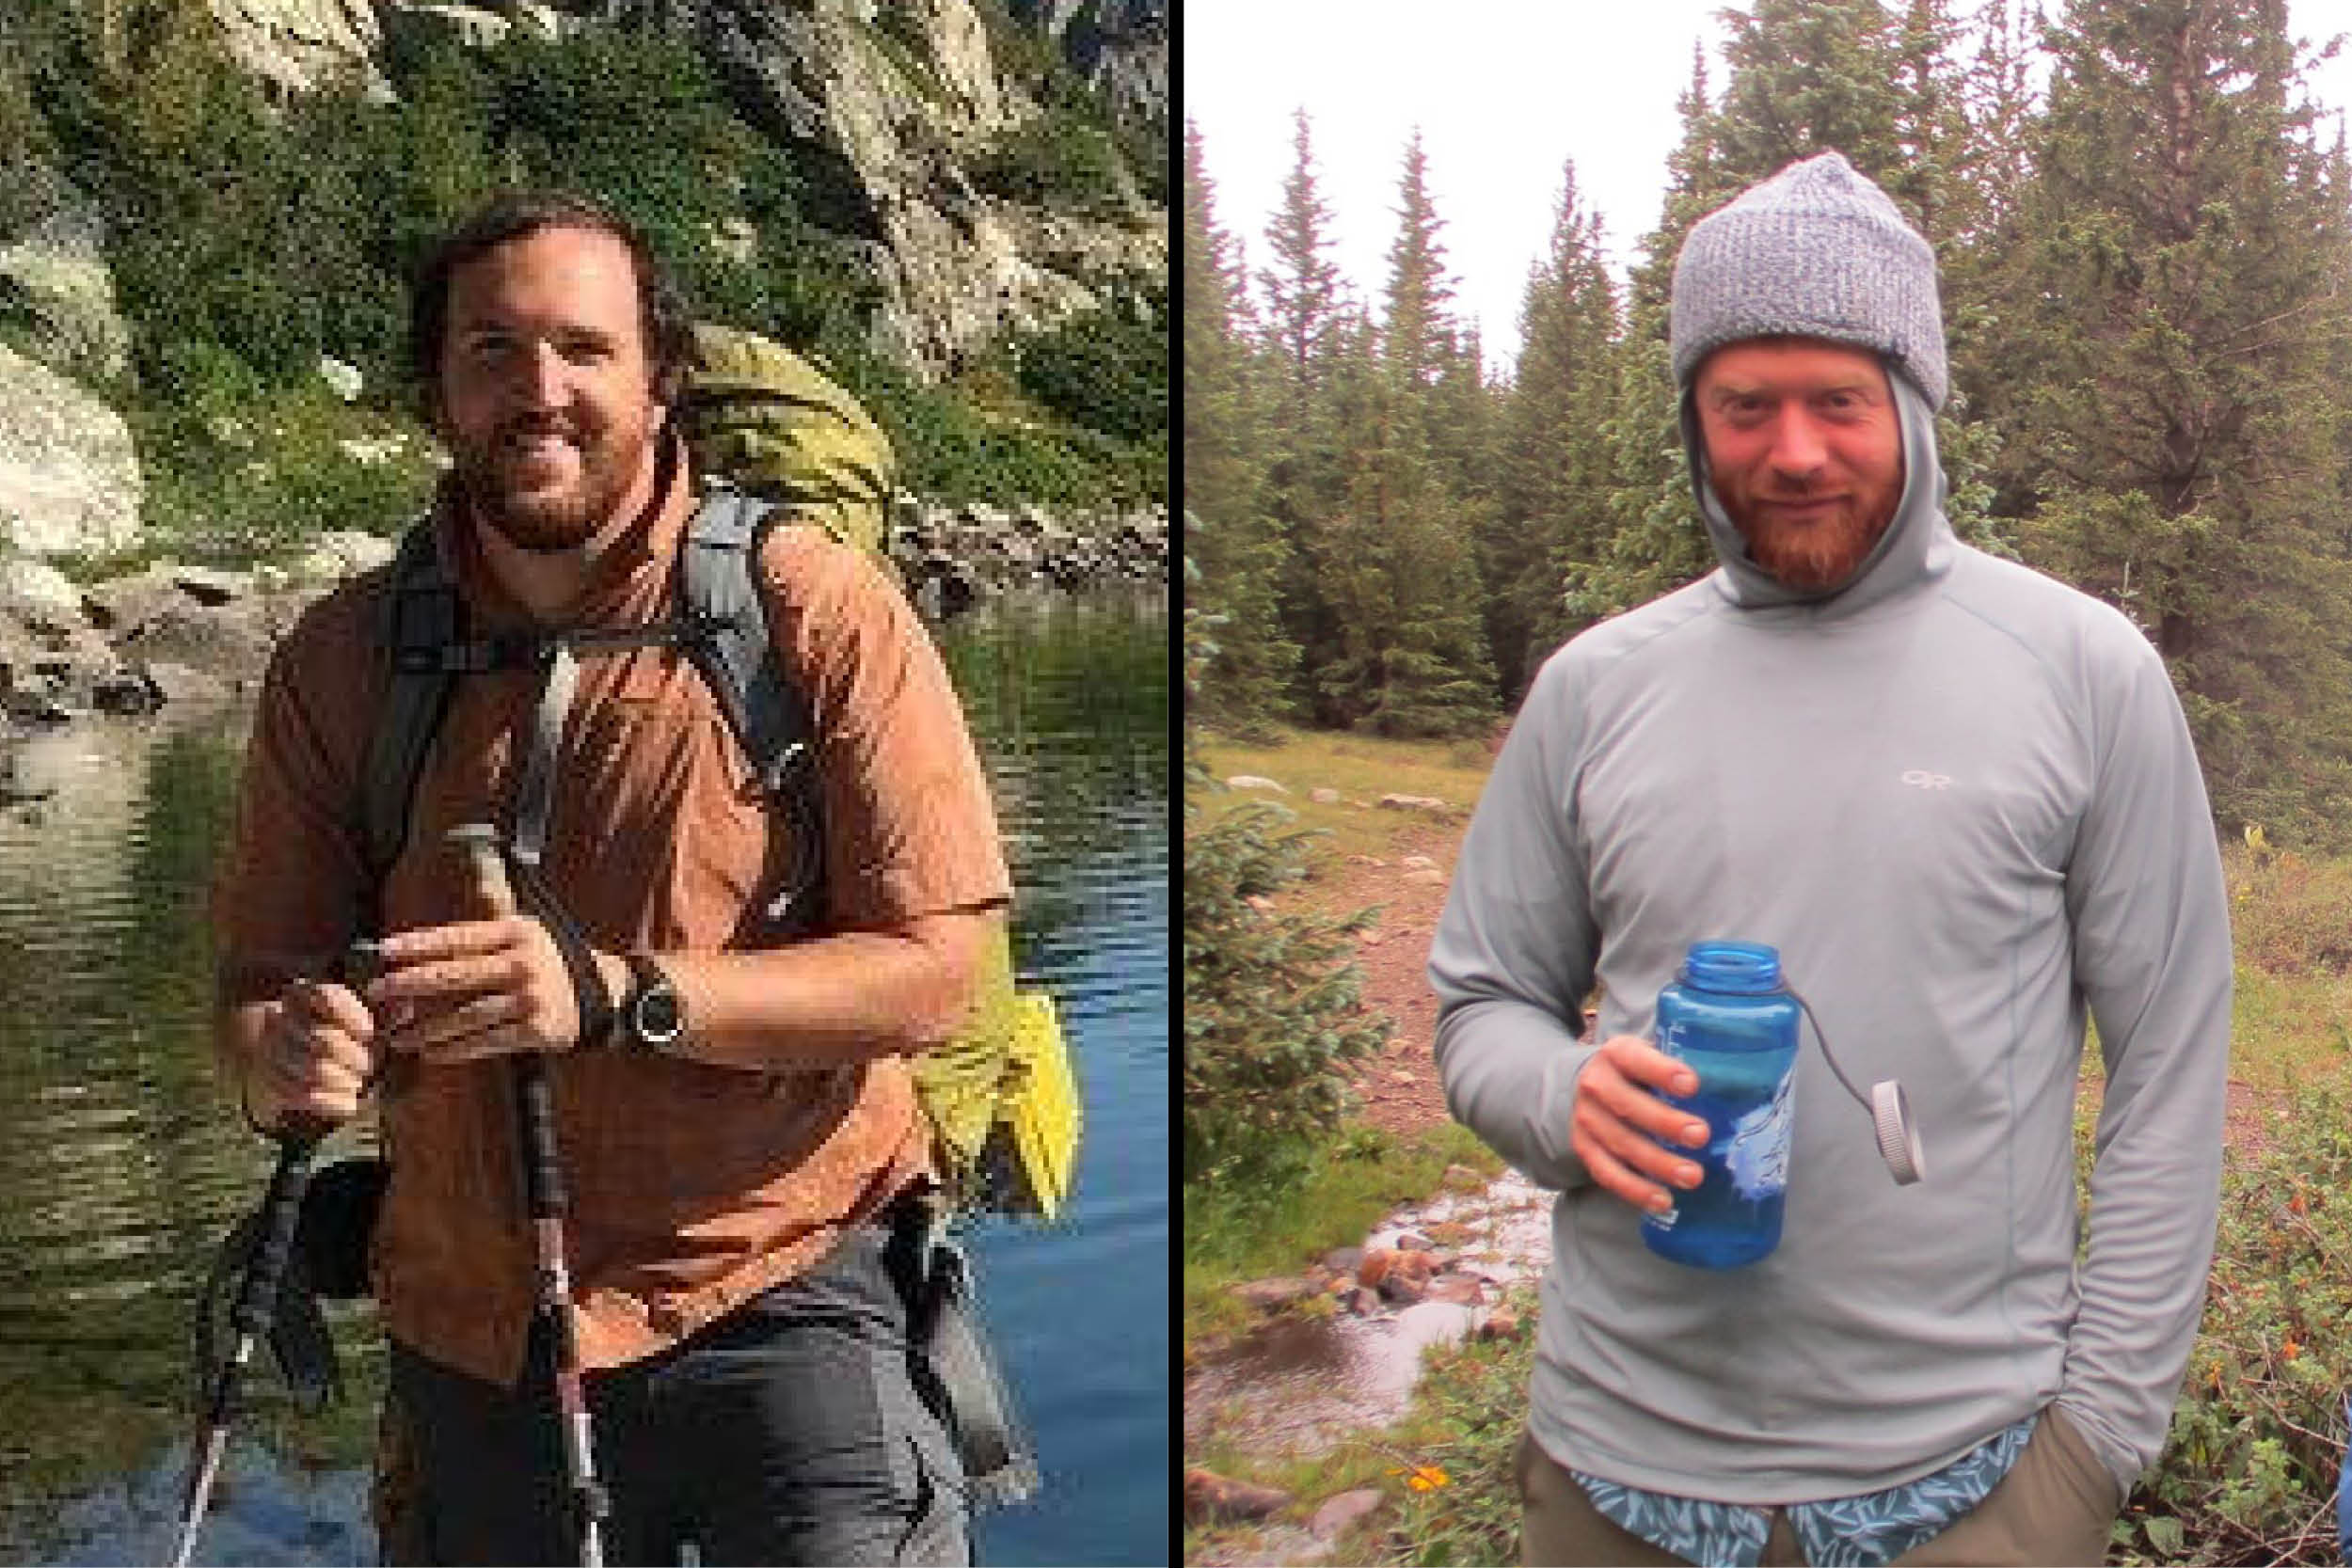 Two photos are placed side by side. the photo on the left shows a male-presenting person with hiking sticks and a backpack in front of a lake. the photo on the right features a male-presenting person in a hooded sweatshirt with the hood pulled tight over their head, holding a water bottle, standing in the woods.